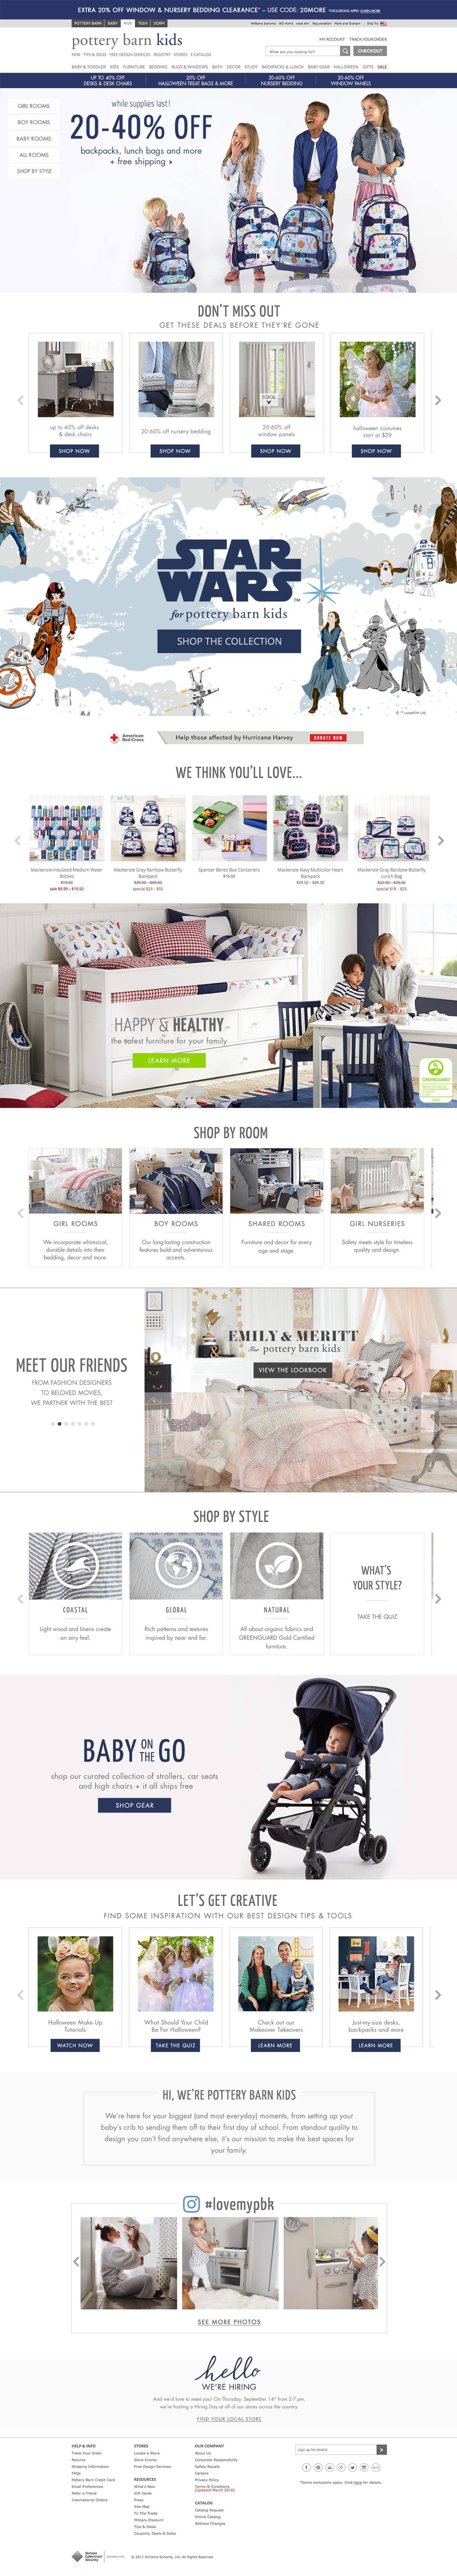 eCommerce website: Pottery Barn Kids